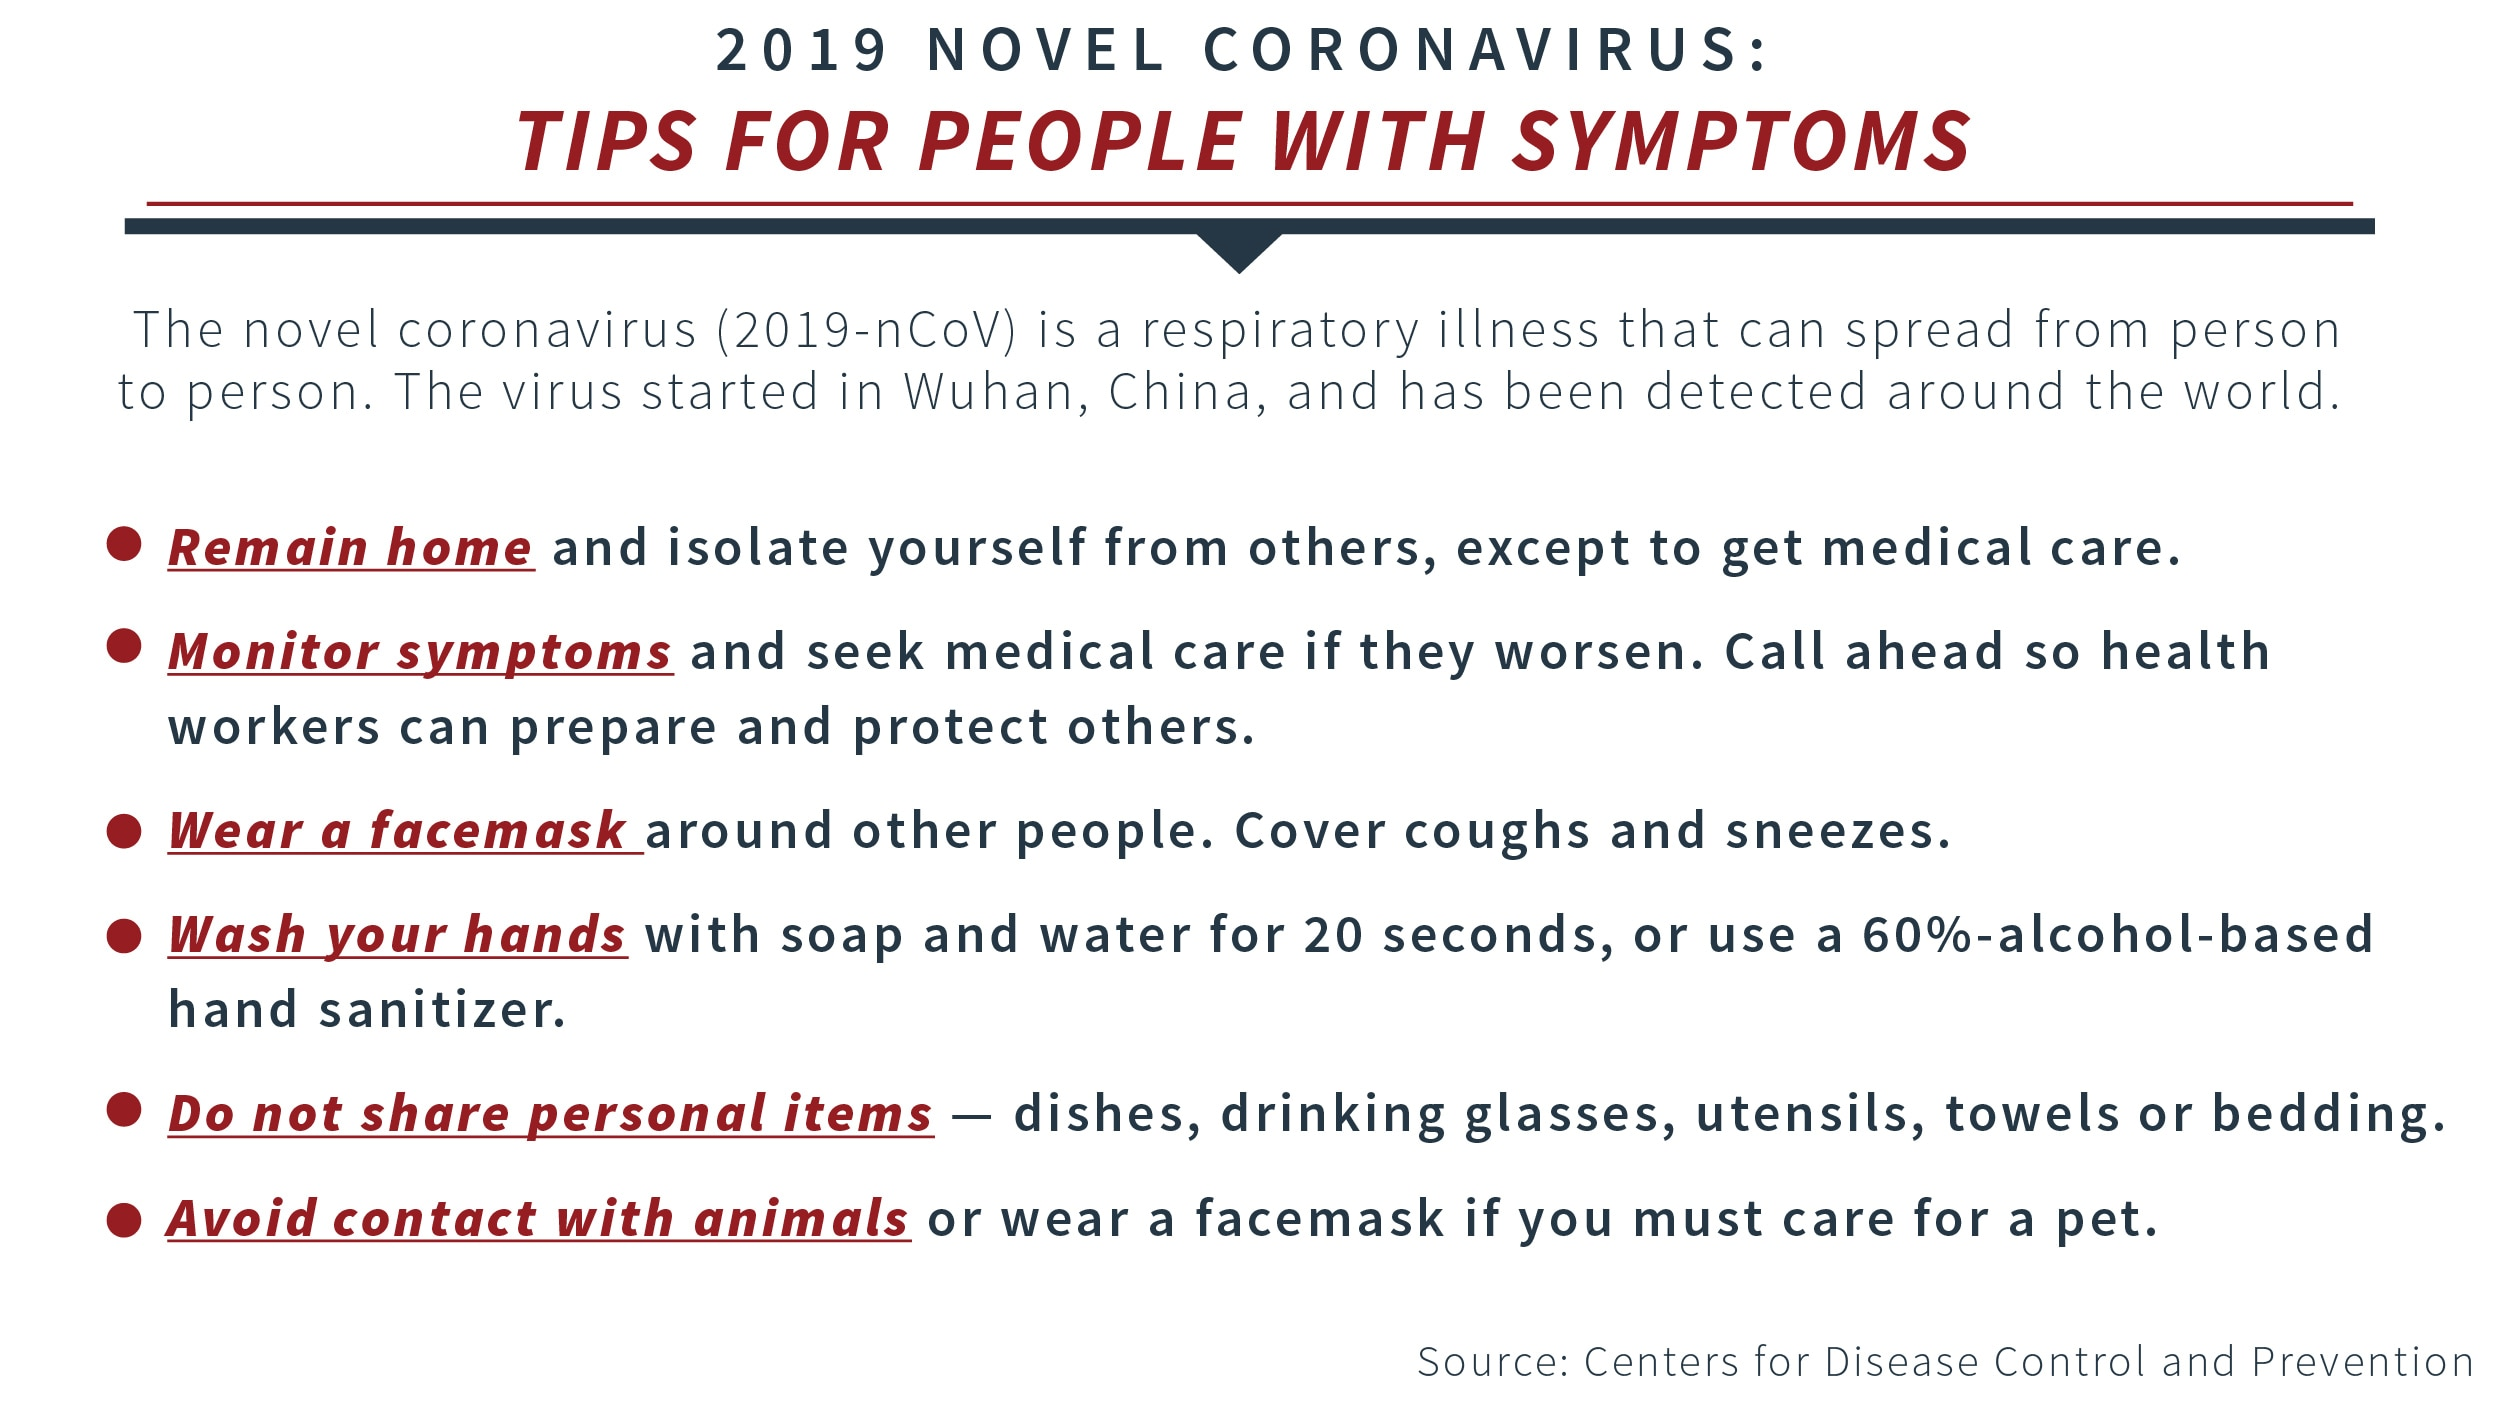 Tips to avoid infecting others if you have coronavirus symptoms (CDC)